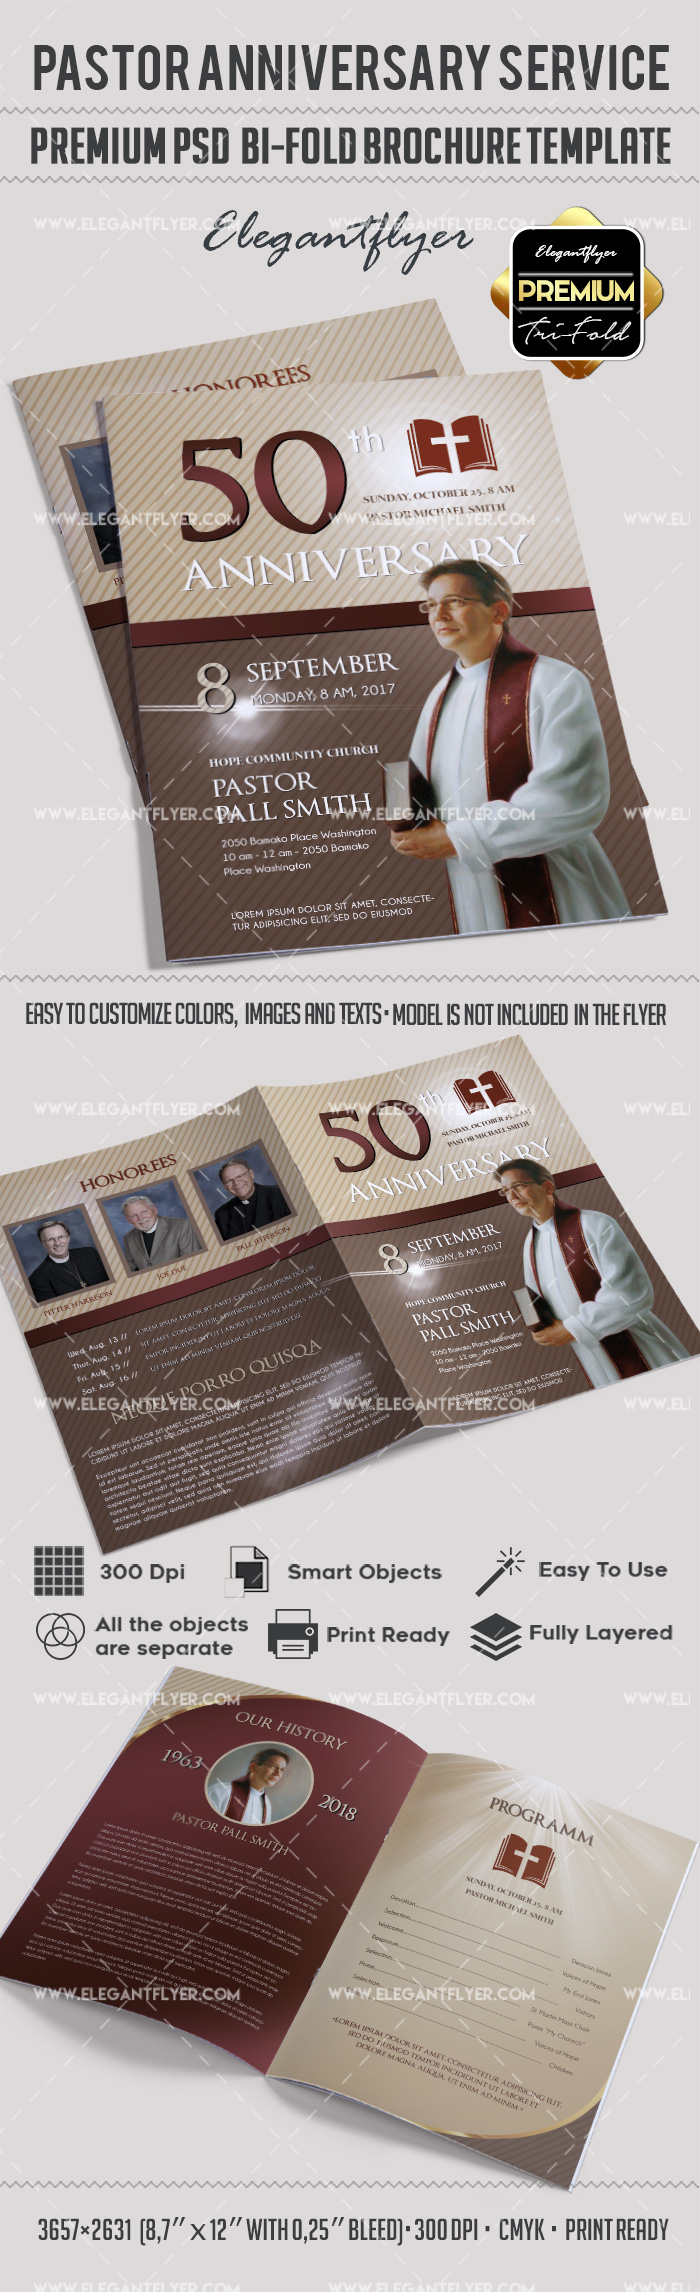 Pastor anniversary service in psd by elegantflyer for Bi fold brochure template publisher